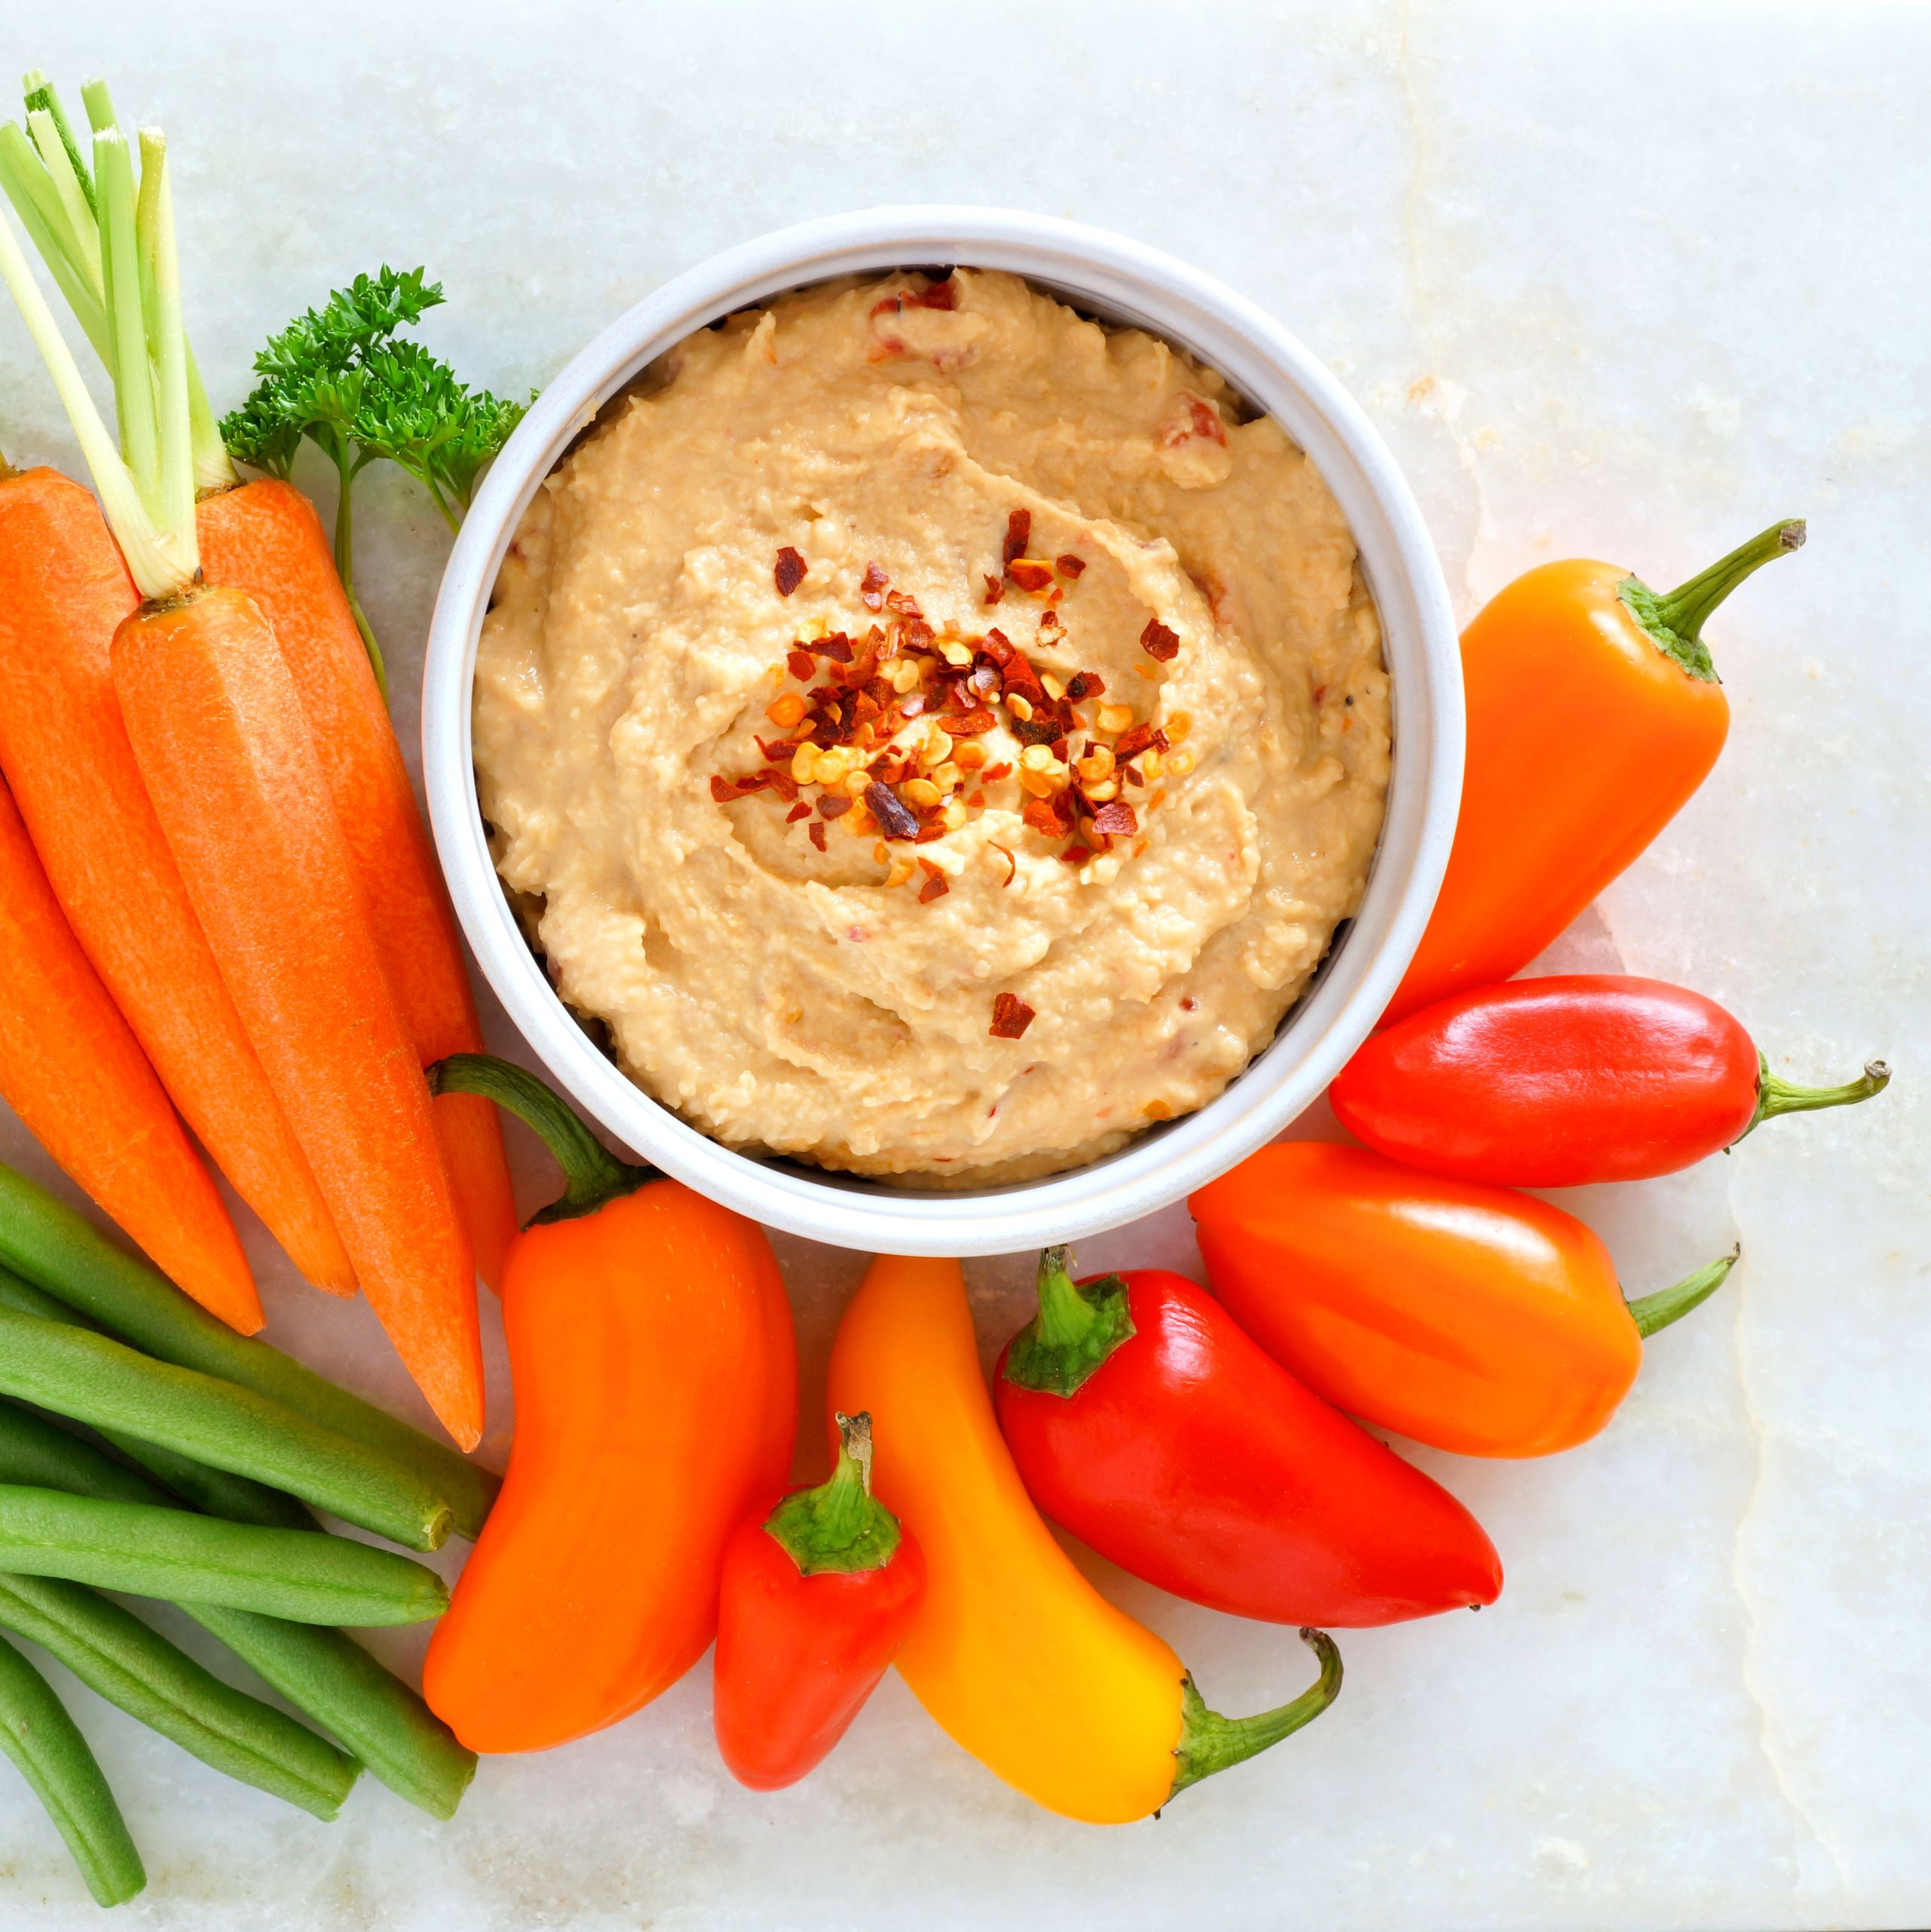 Hummus with fresh vegetables, above view on white marble